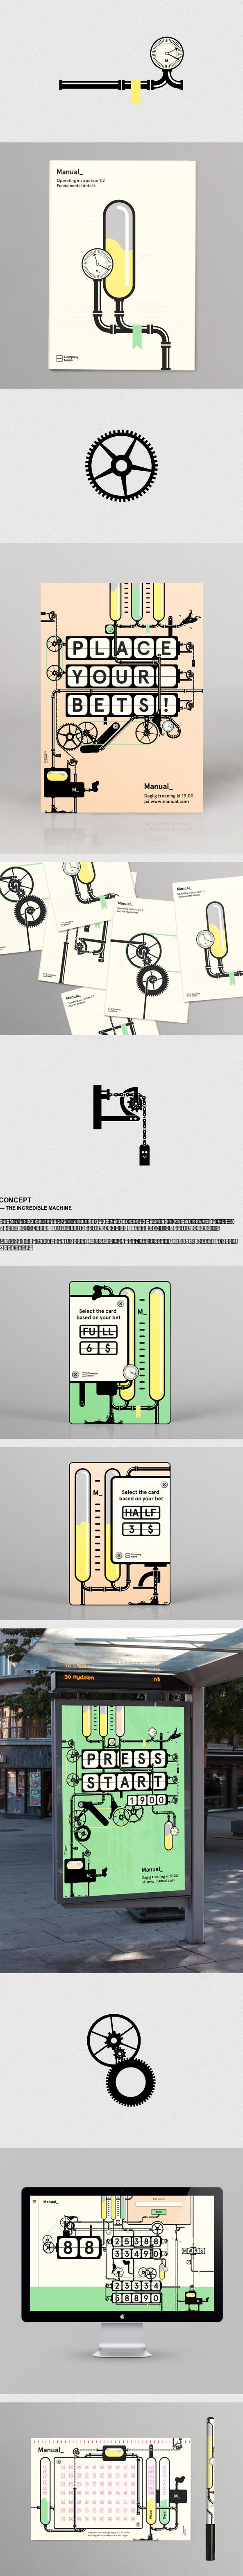 Ludvig Bruneau Rossow – Manual, a conceptual solution developed for an fictitious lottery in Norway, via Behance